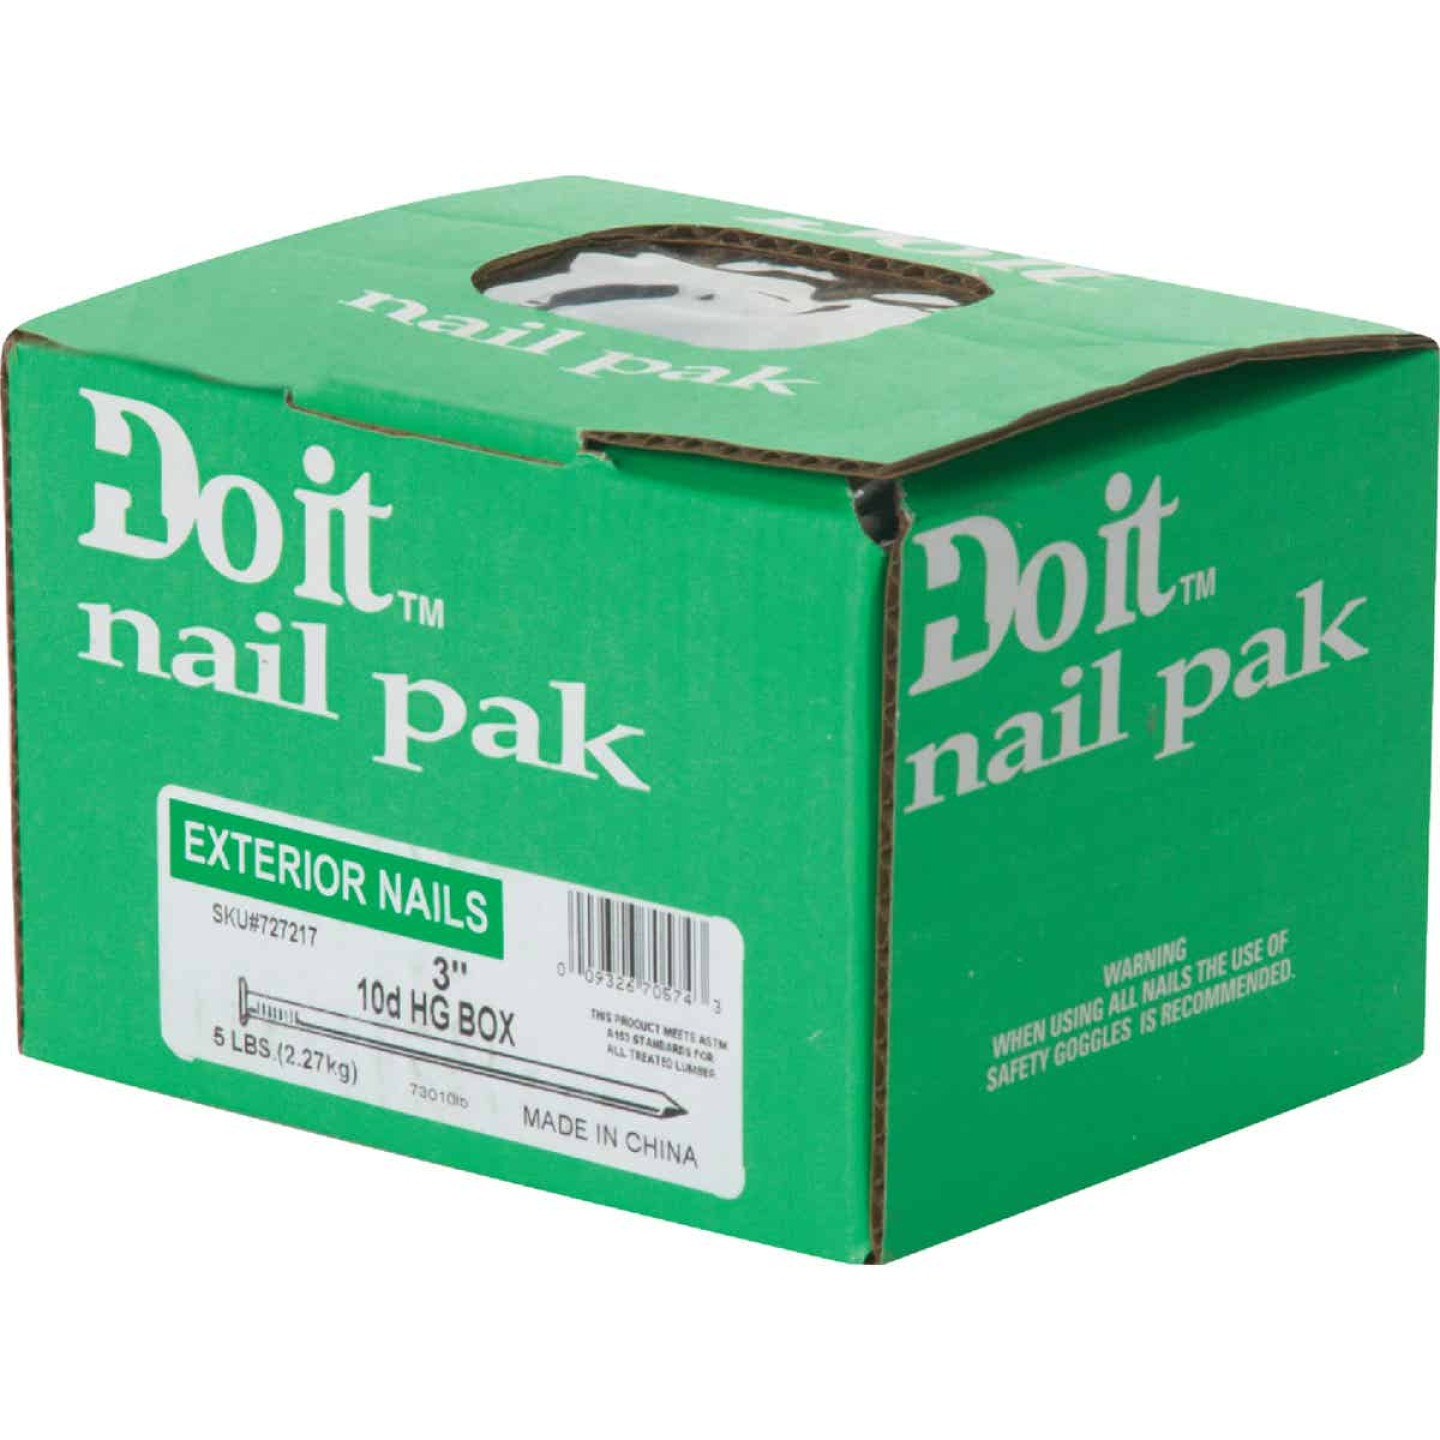 Do it 10d x 3 In. 10-1/2 ga Hot Galvanized Box Nails (470 Ct., 5 Lb.) Image 2